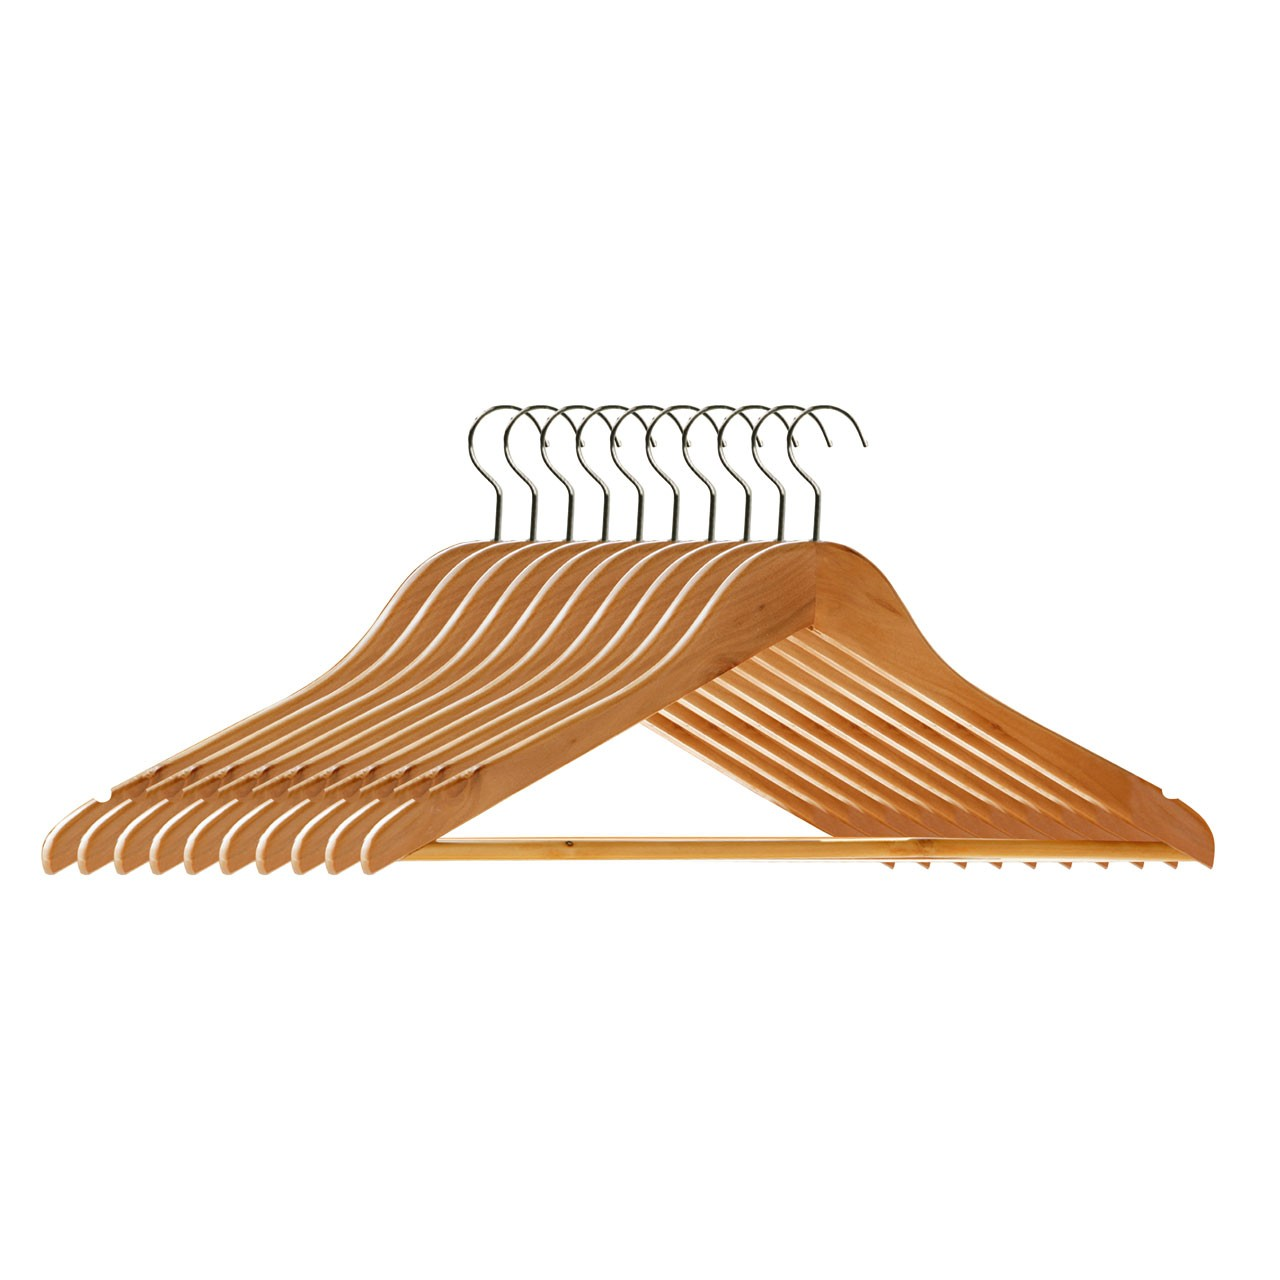 Wooden Clothes Hangers , Set of 20